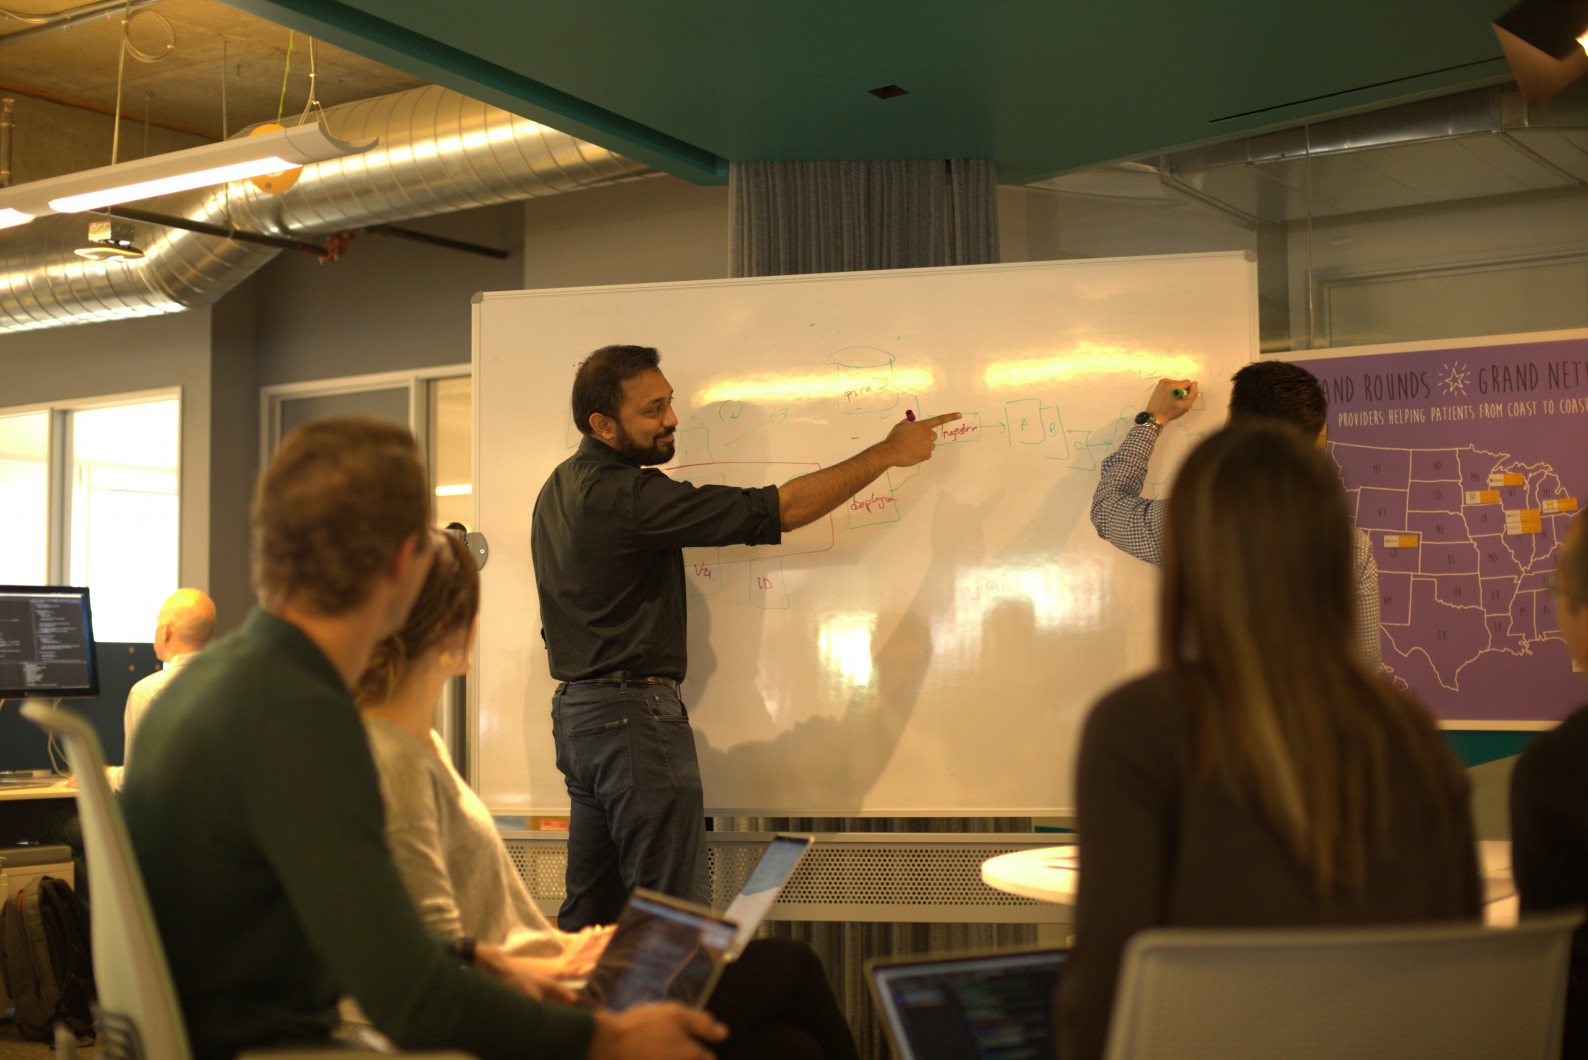 Man in front of whiteboard in group meeting